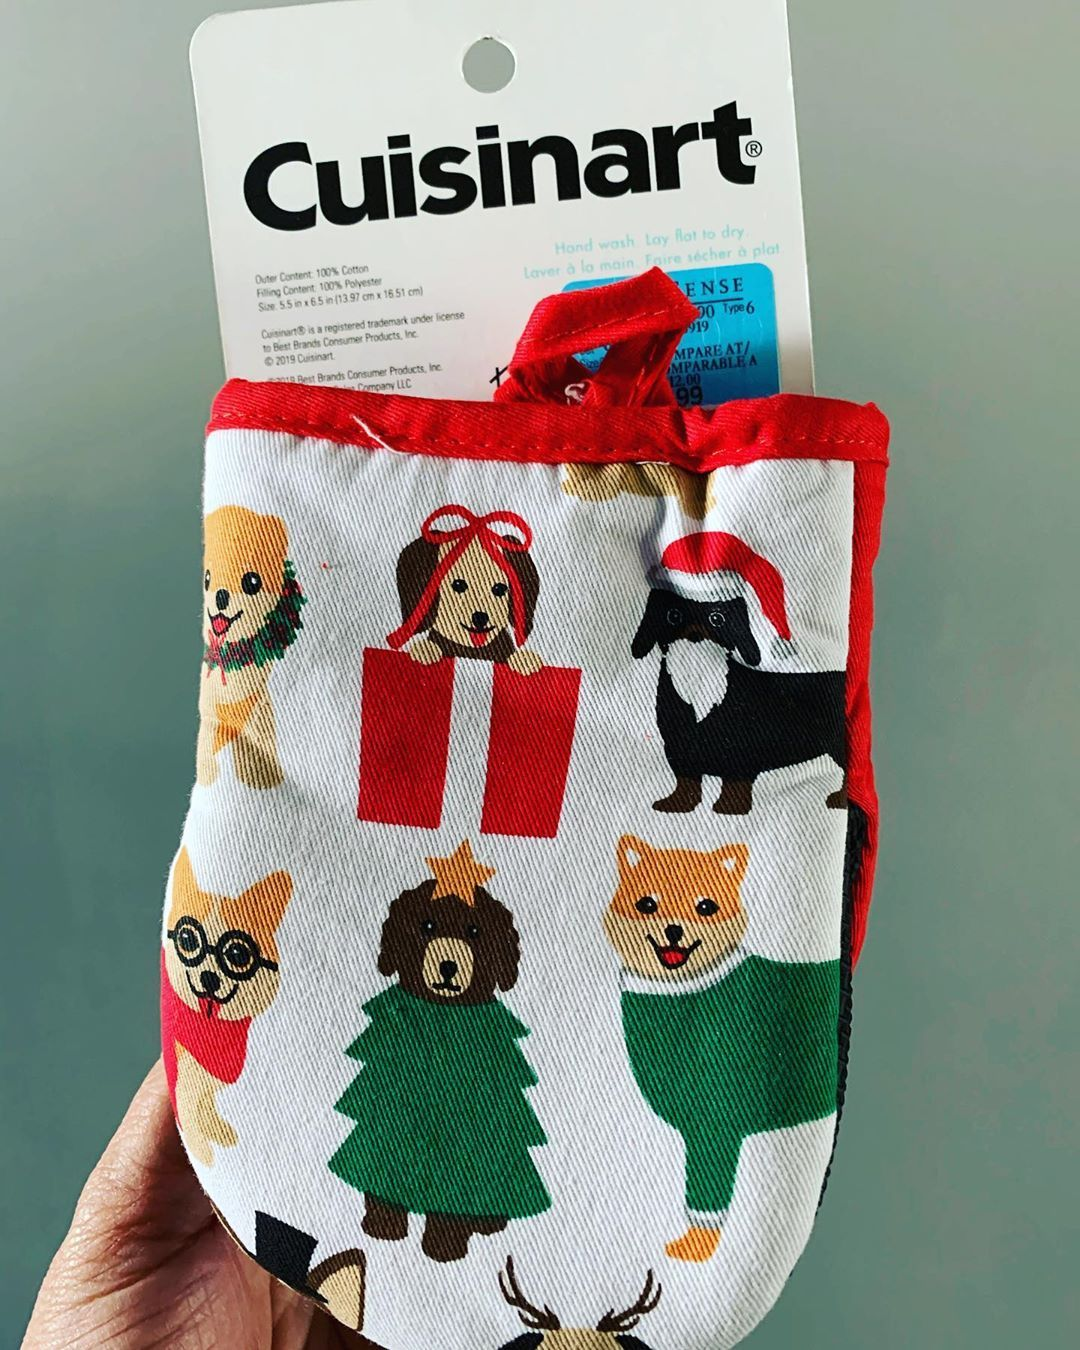 Look What I Found Oven Mitts With Dogs Plus Shiba Inus Ovenmitts Goodfind Dogs Shibainu Gift Oven Mitts Shiba Inu Christmas Stockings